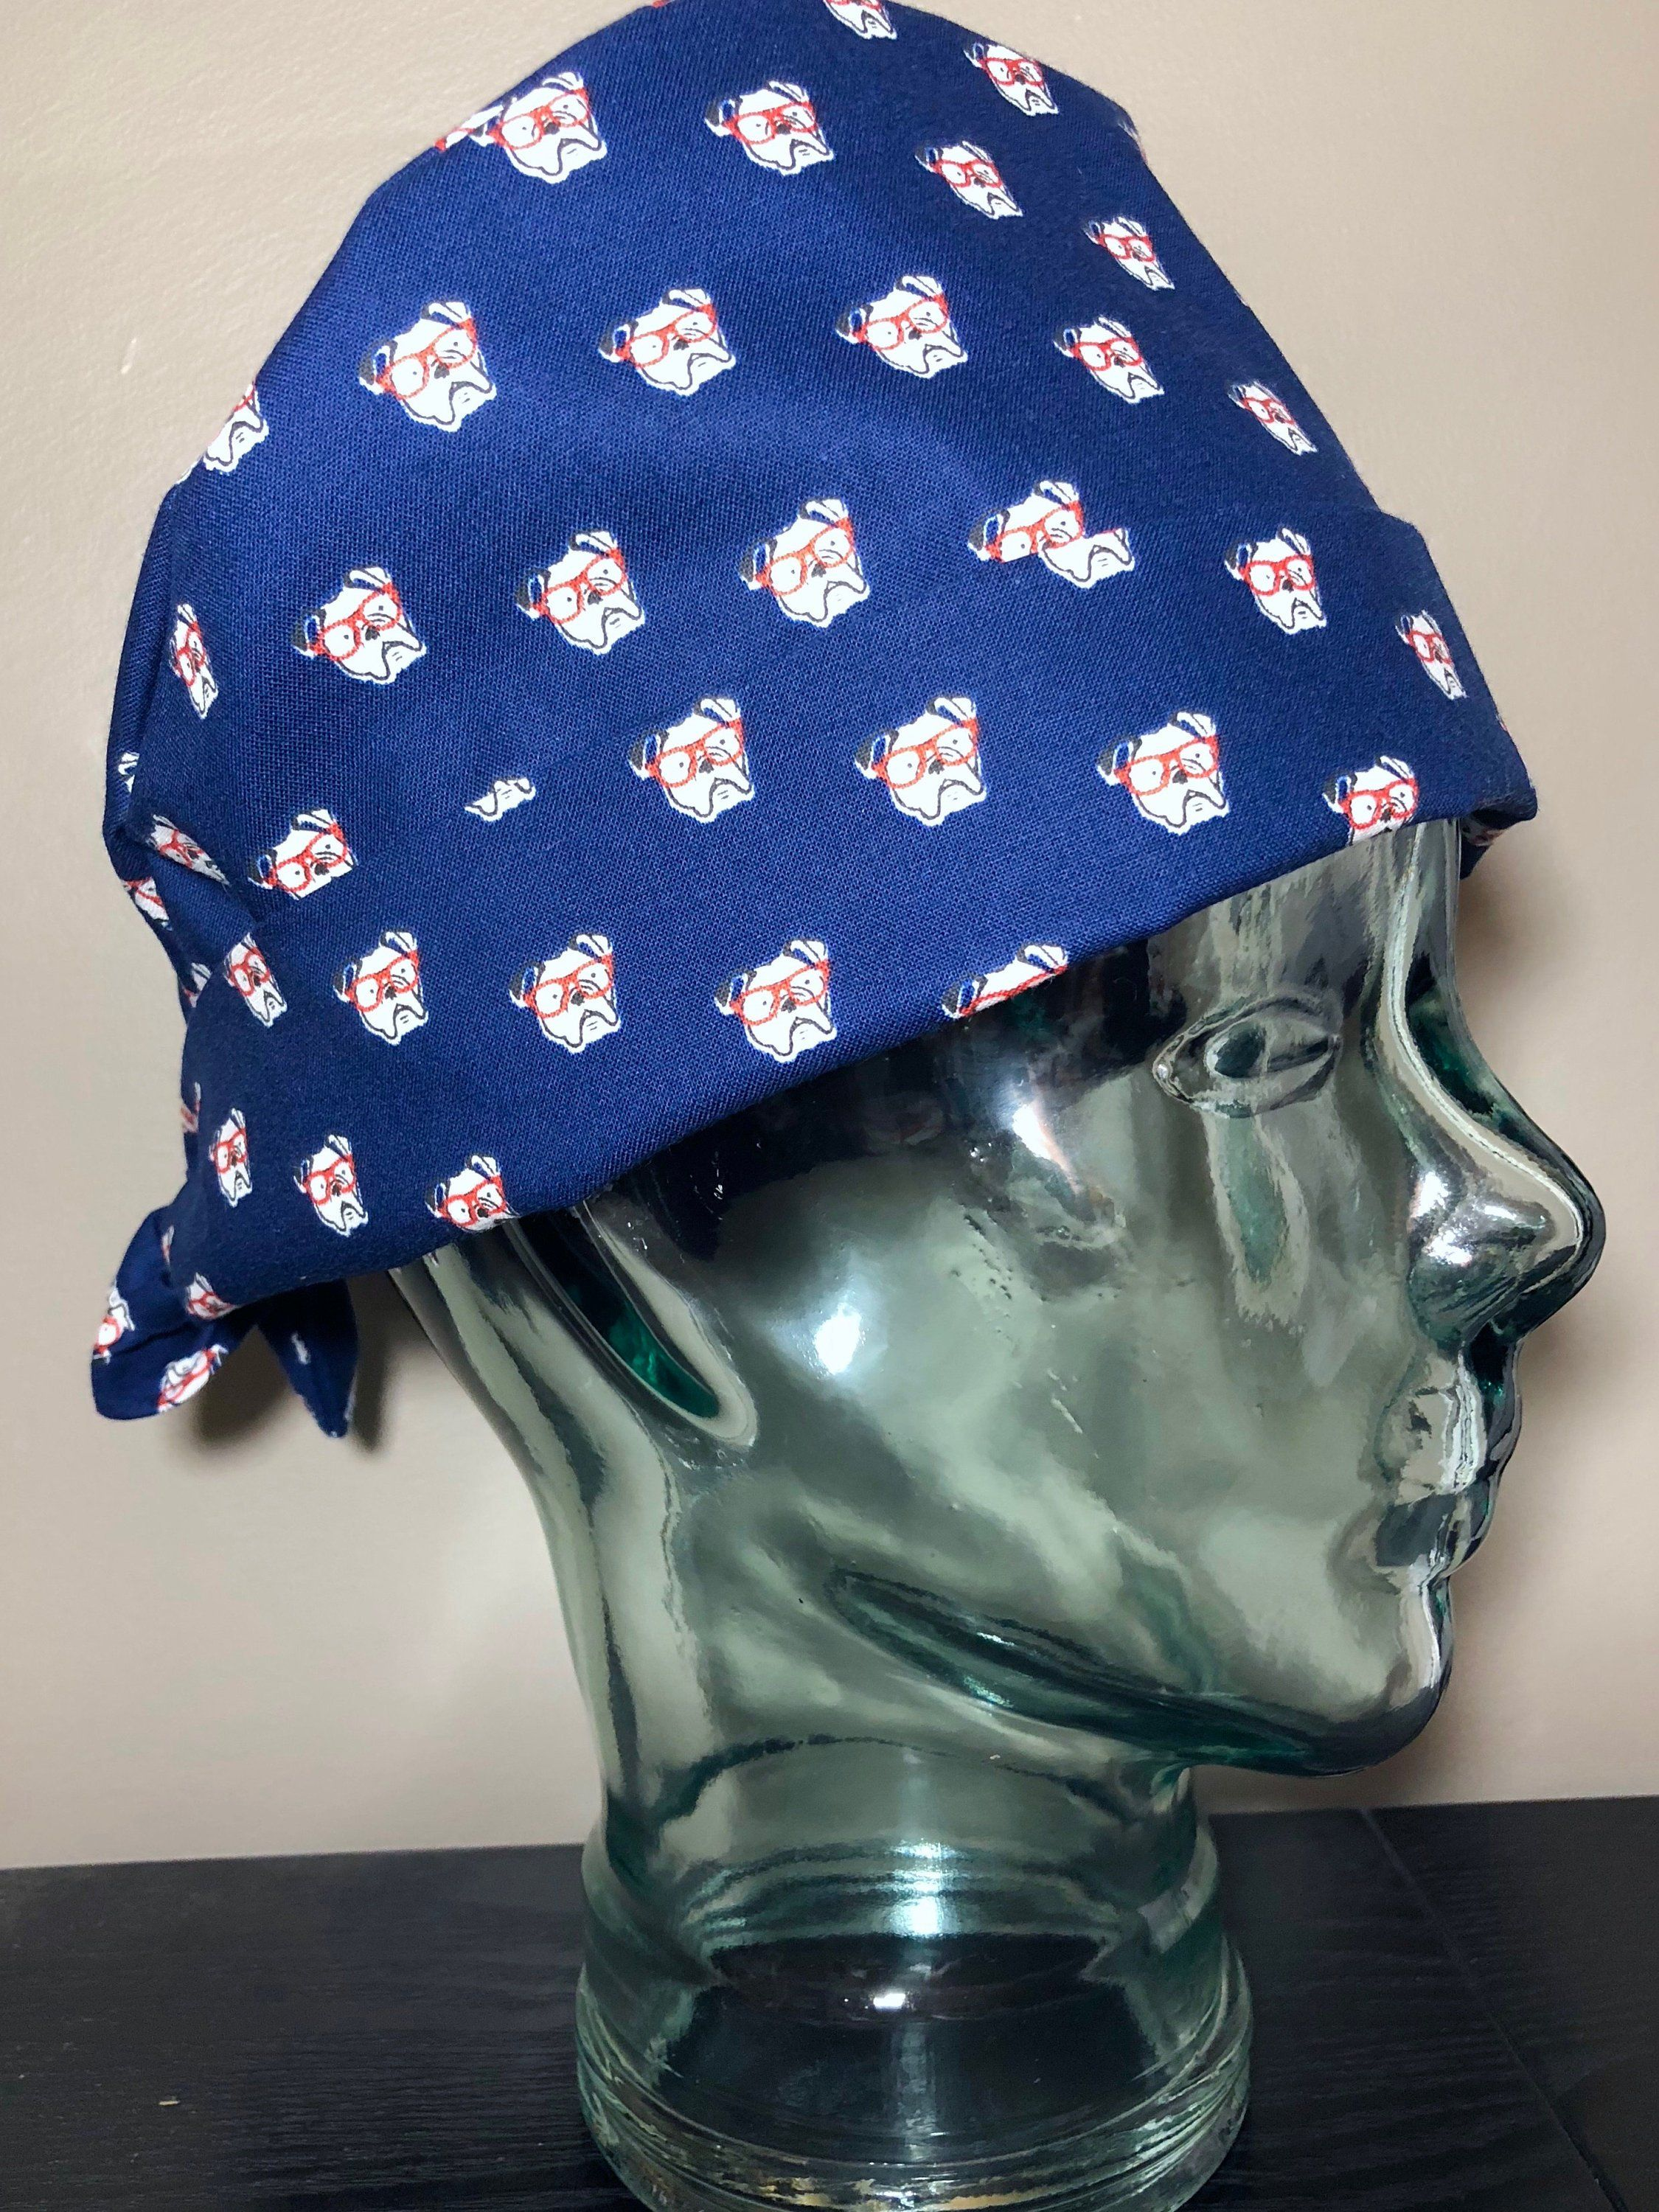 Bulldogs with Glasses on Navy Surgical Scrub Hat 70adca5d59d